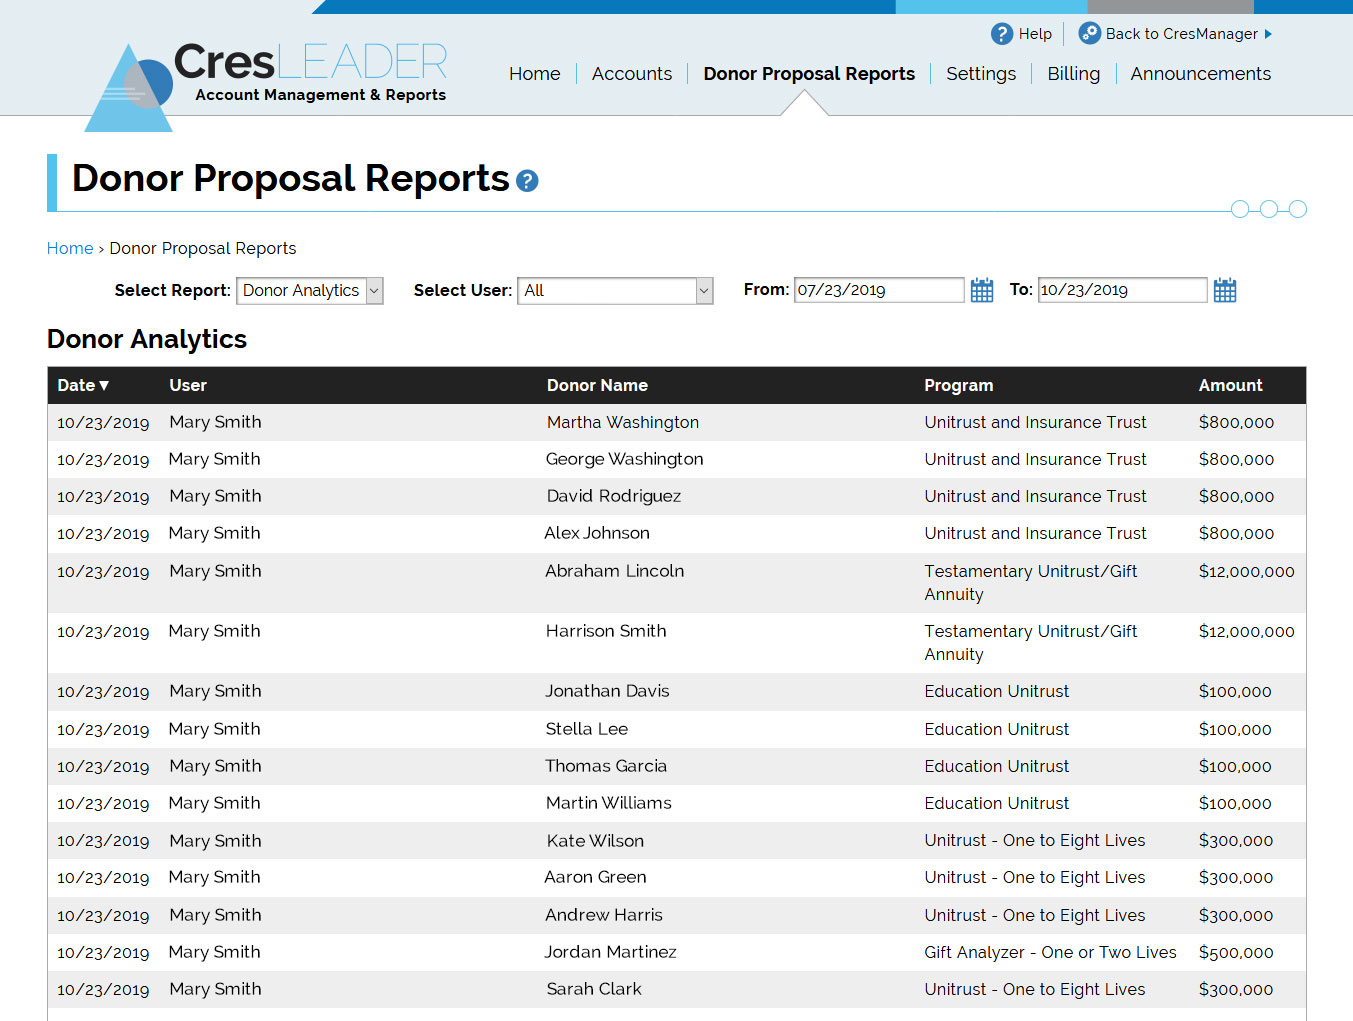 Donor Proposal Reports